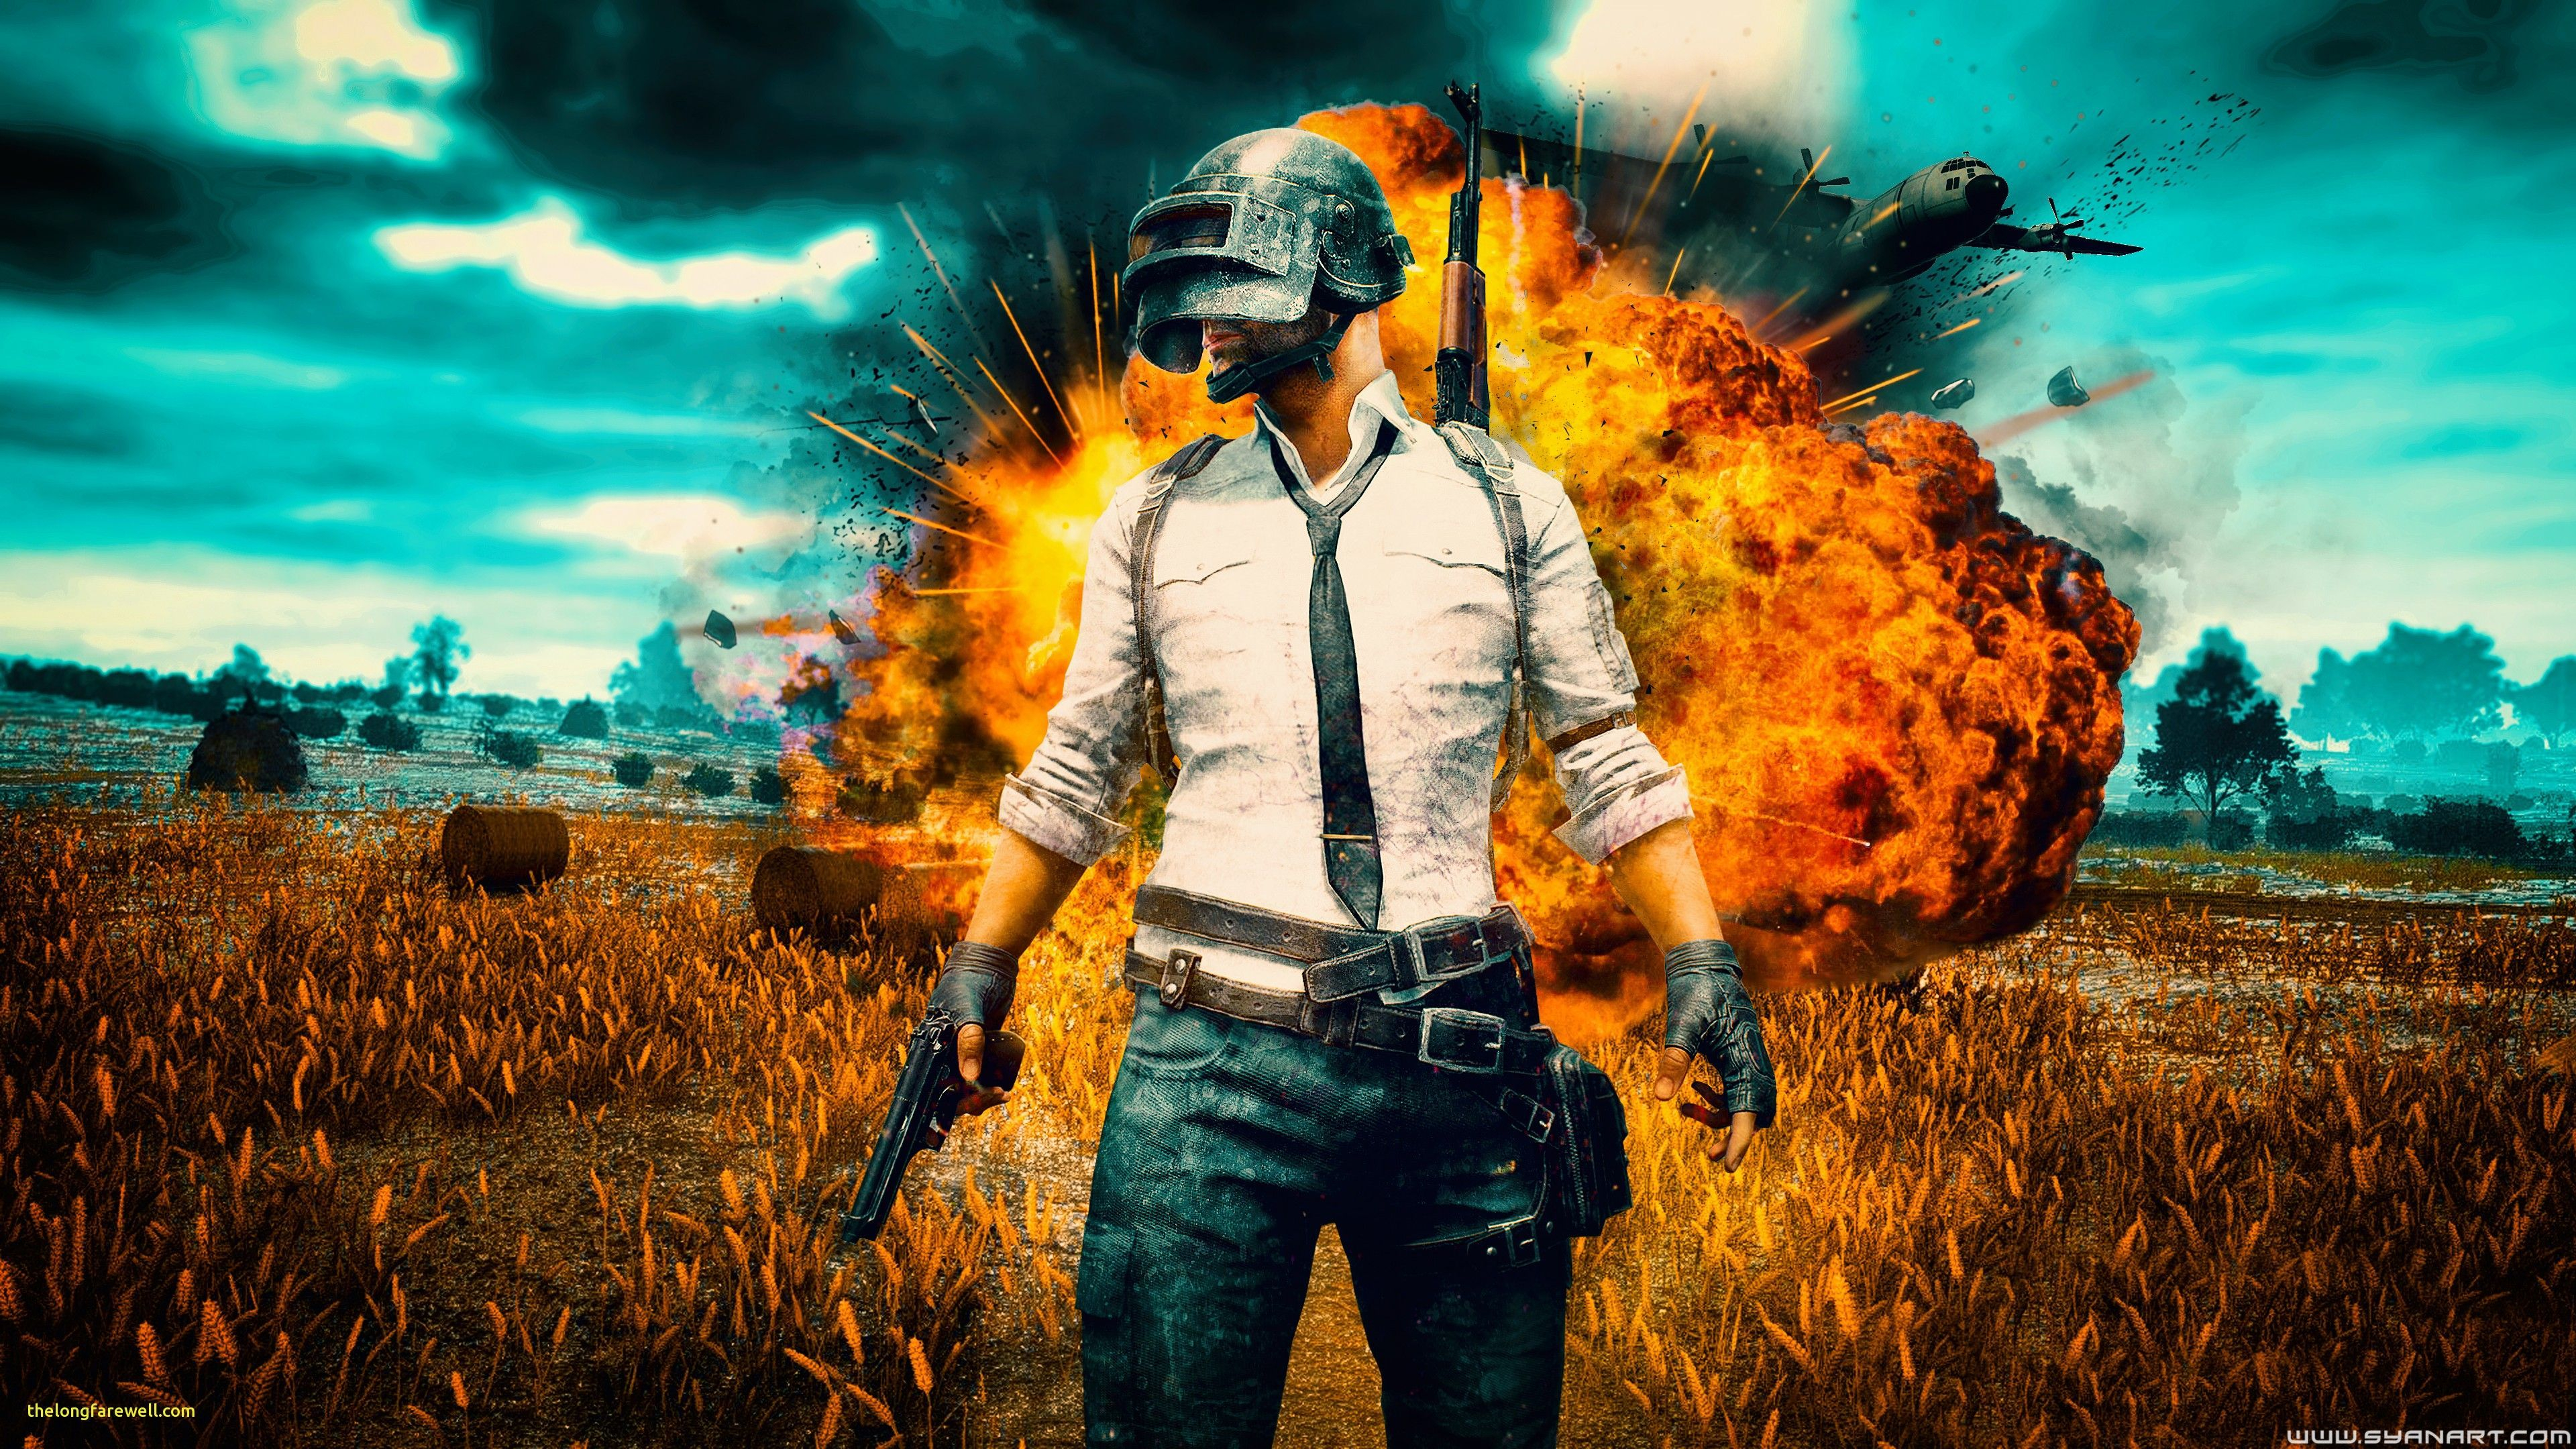 Pubg Wallpaper Hd Pic: Player Unknown's Battlegrounds (PUBG) 4K Pubg Wallpaper